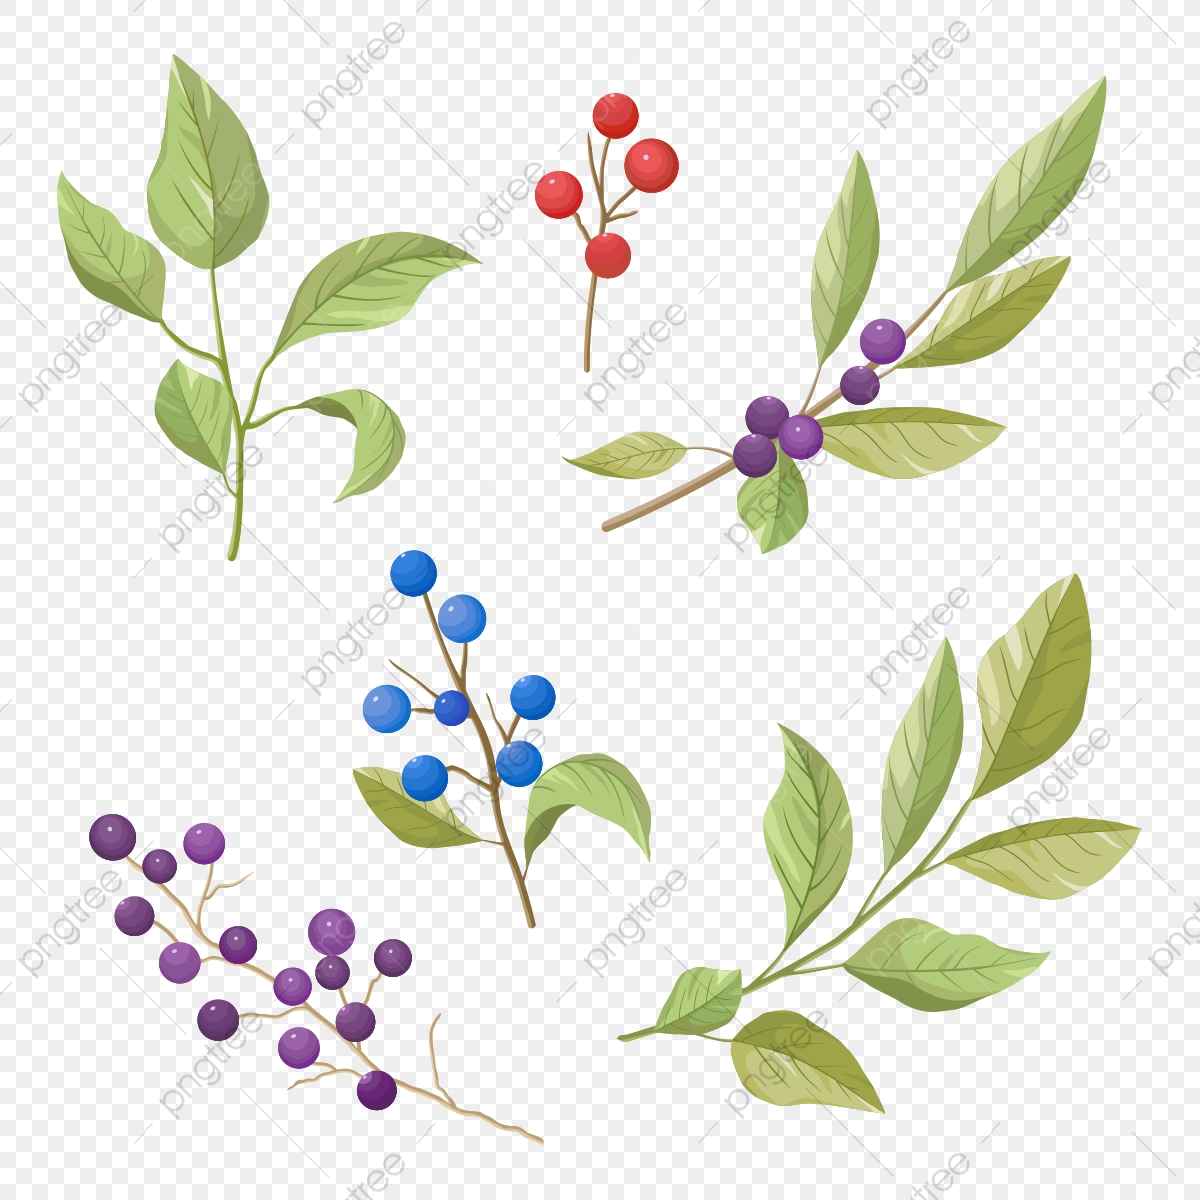 Berry clipart mix, Berry mix Transparent FREE for download on  WebStockReview 2020